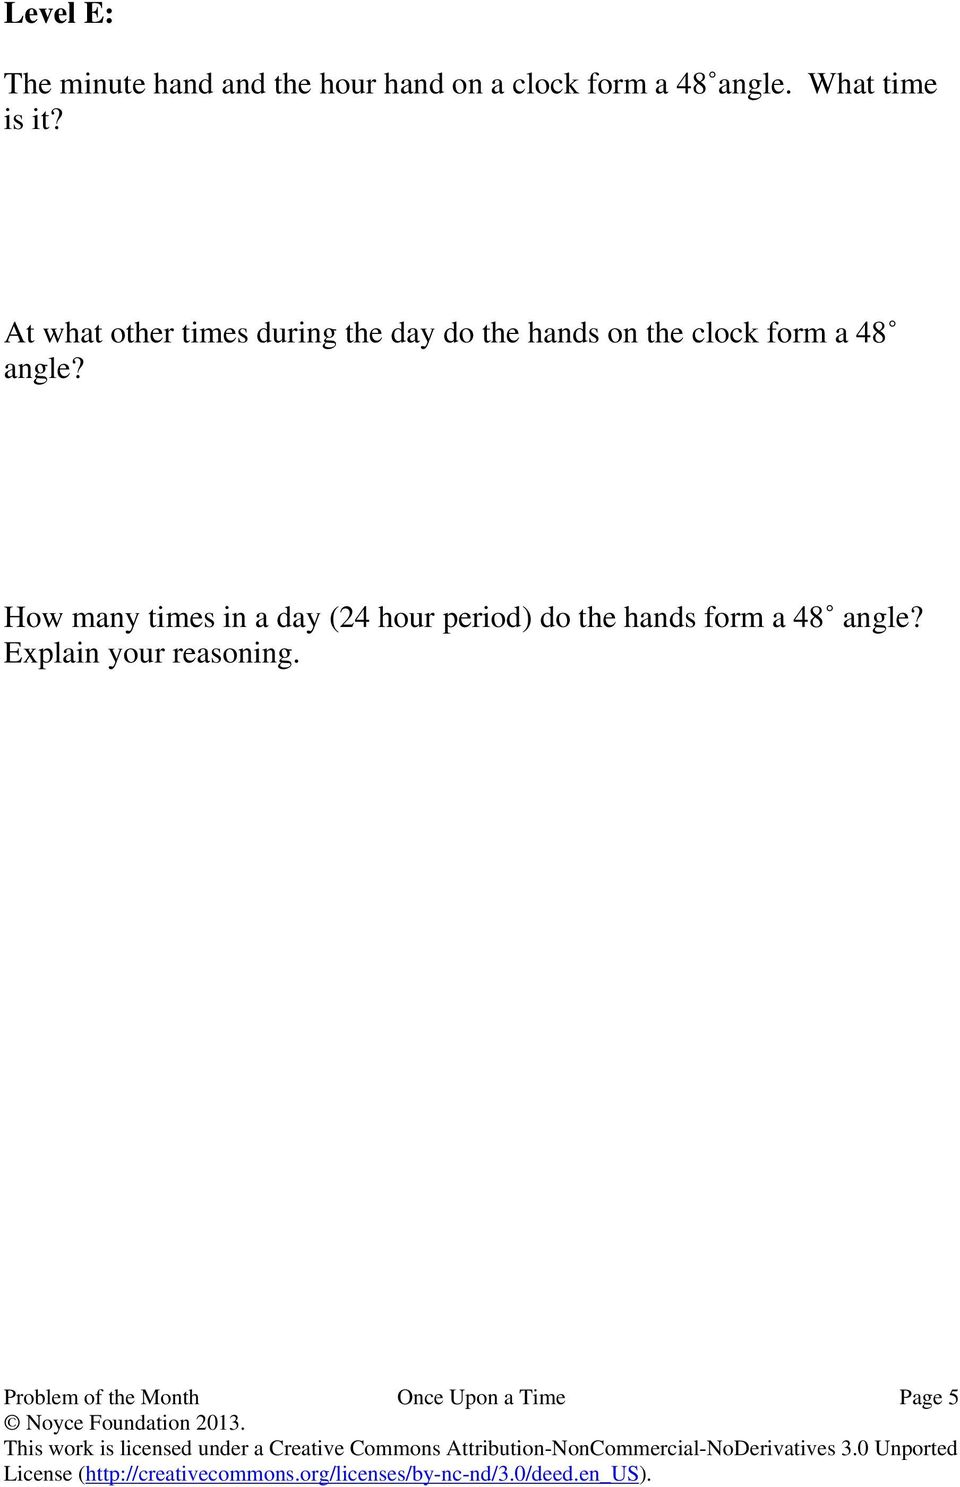 How many times in a day (24 hour period) do the hands form a 48 angle? Explain your reasoning.